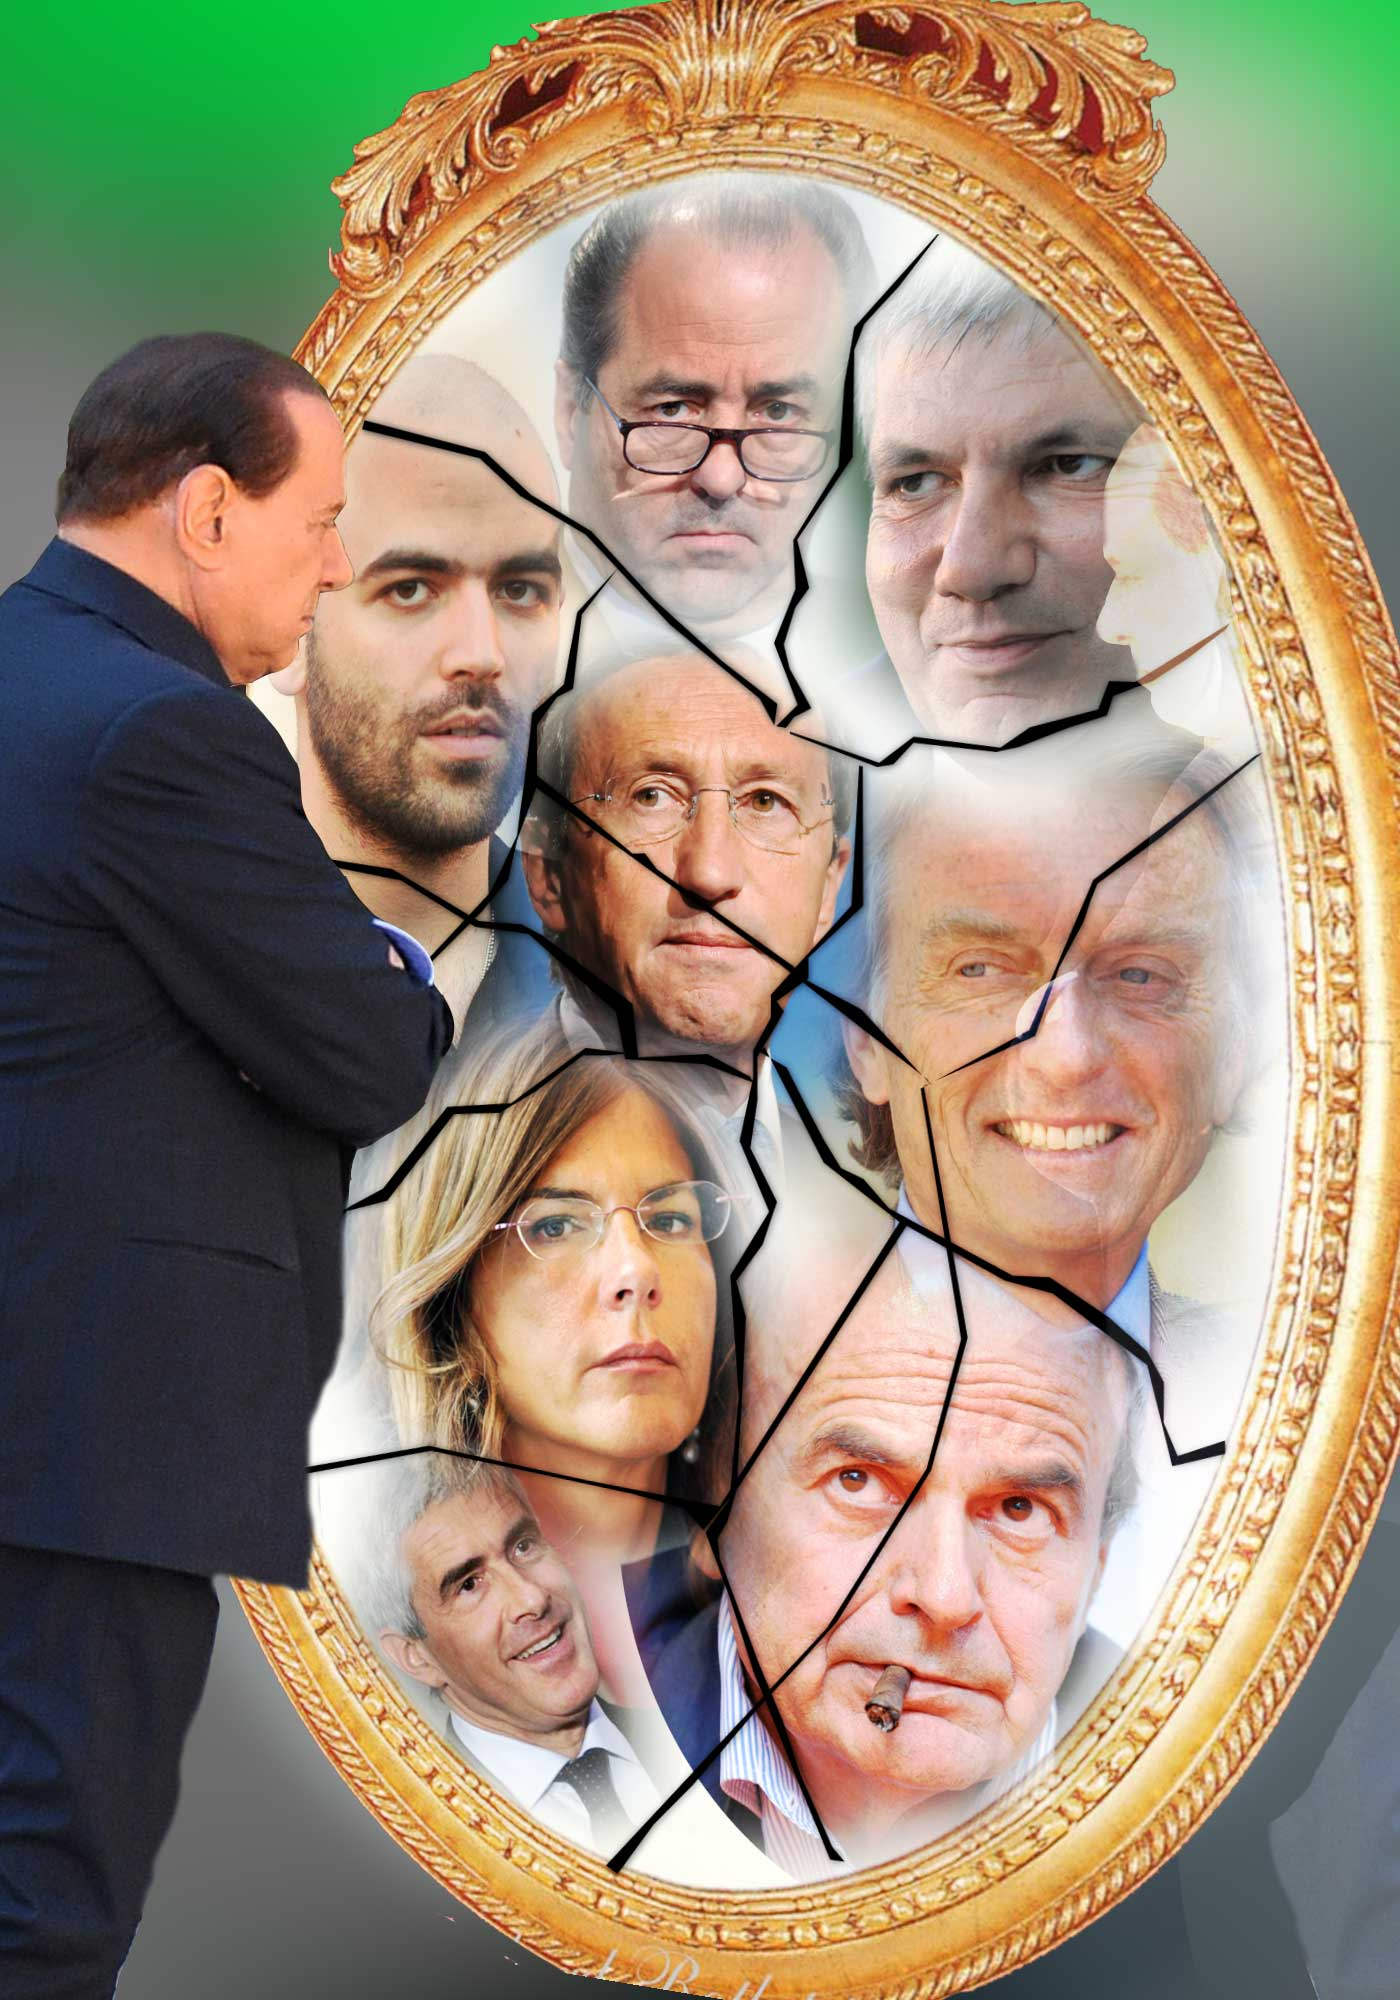 L'Infedele: in cerca dell'anti-Berlusconi